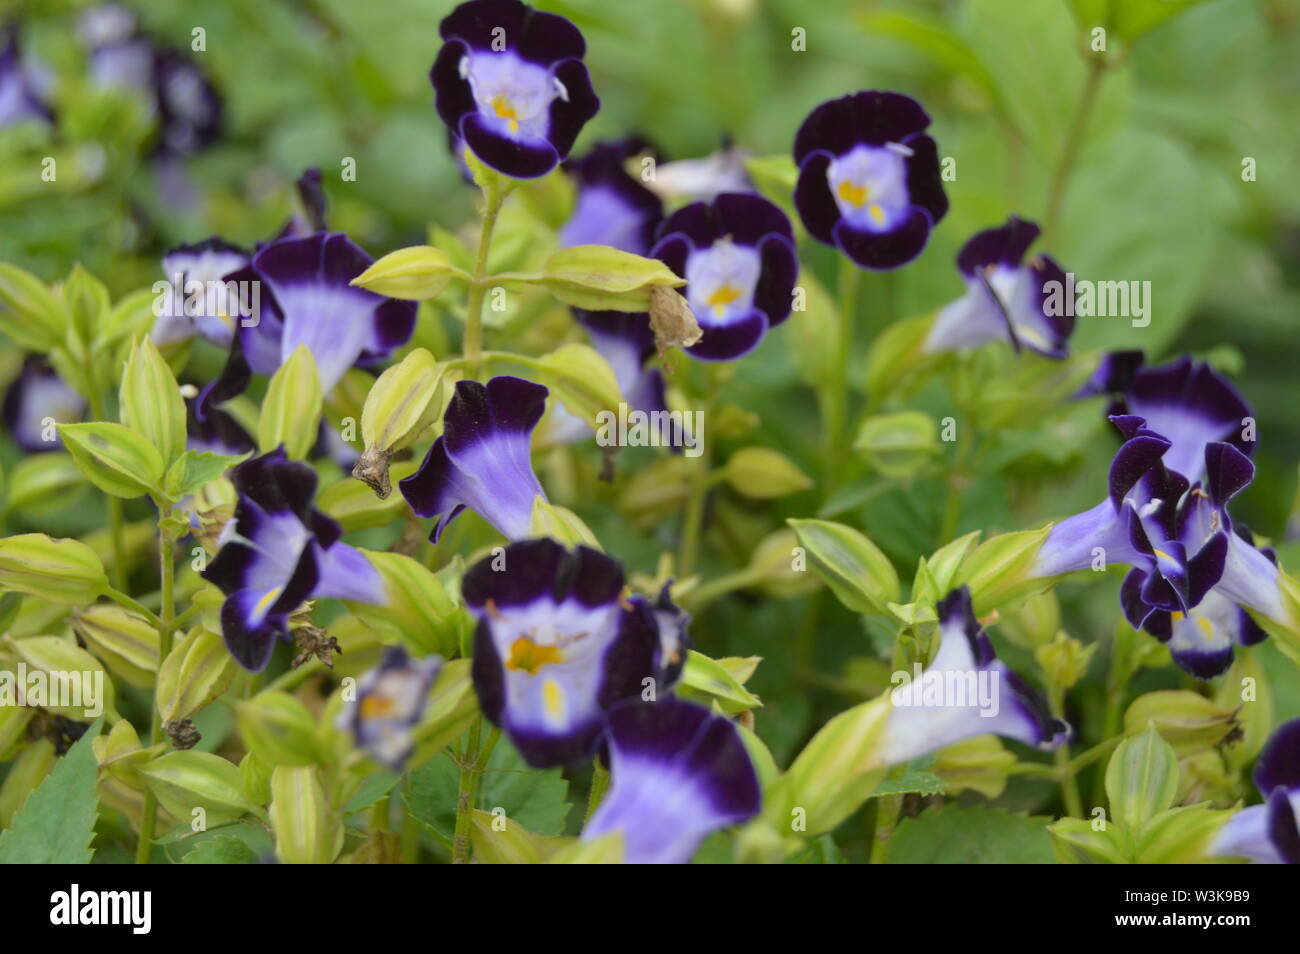 Browallia speciosa; one of the most beautiful flower of blue-violet colour. - Stock Image